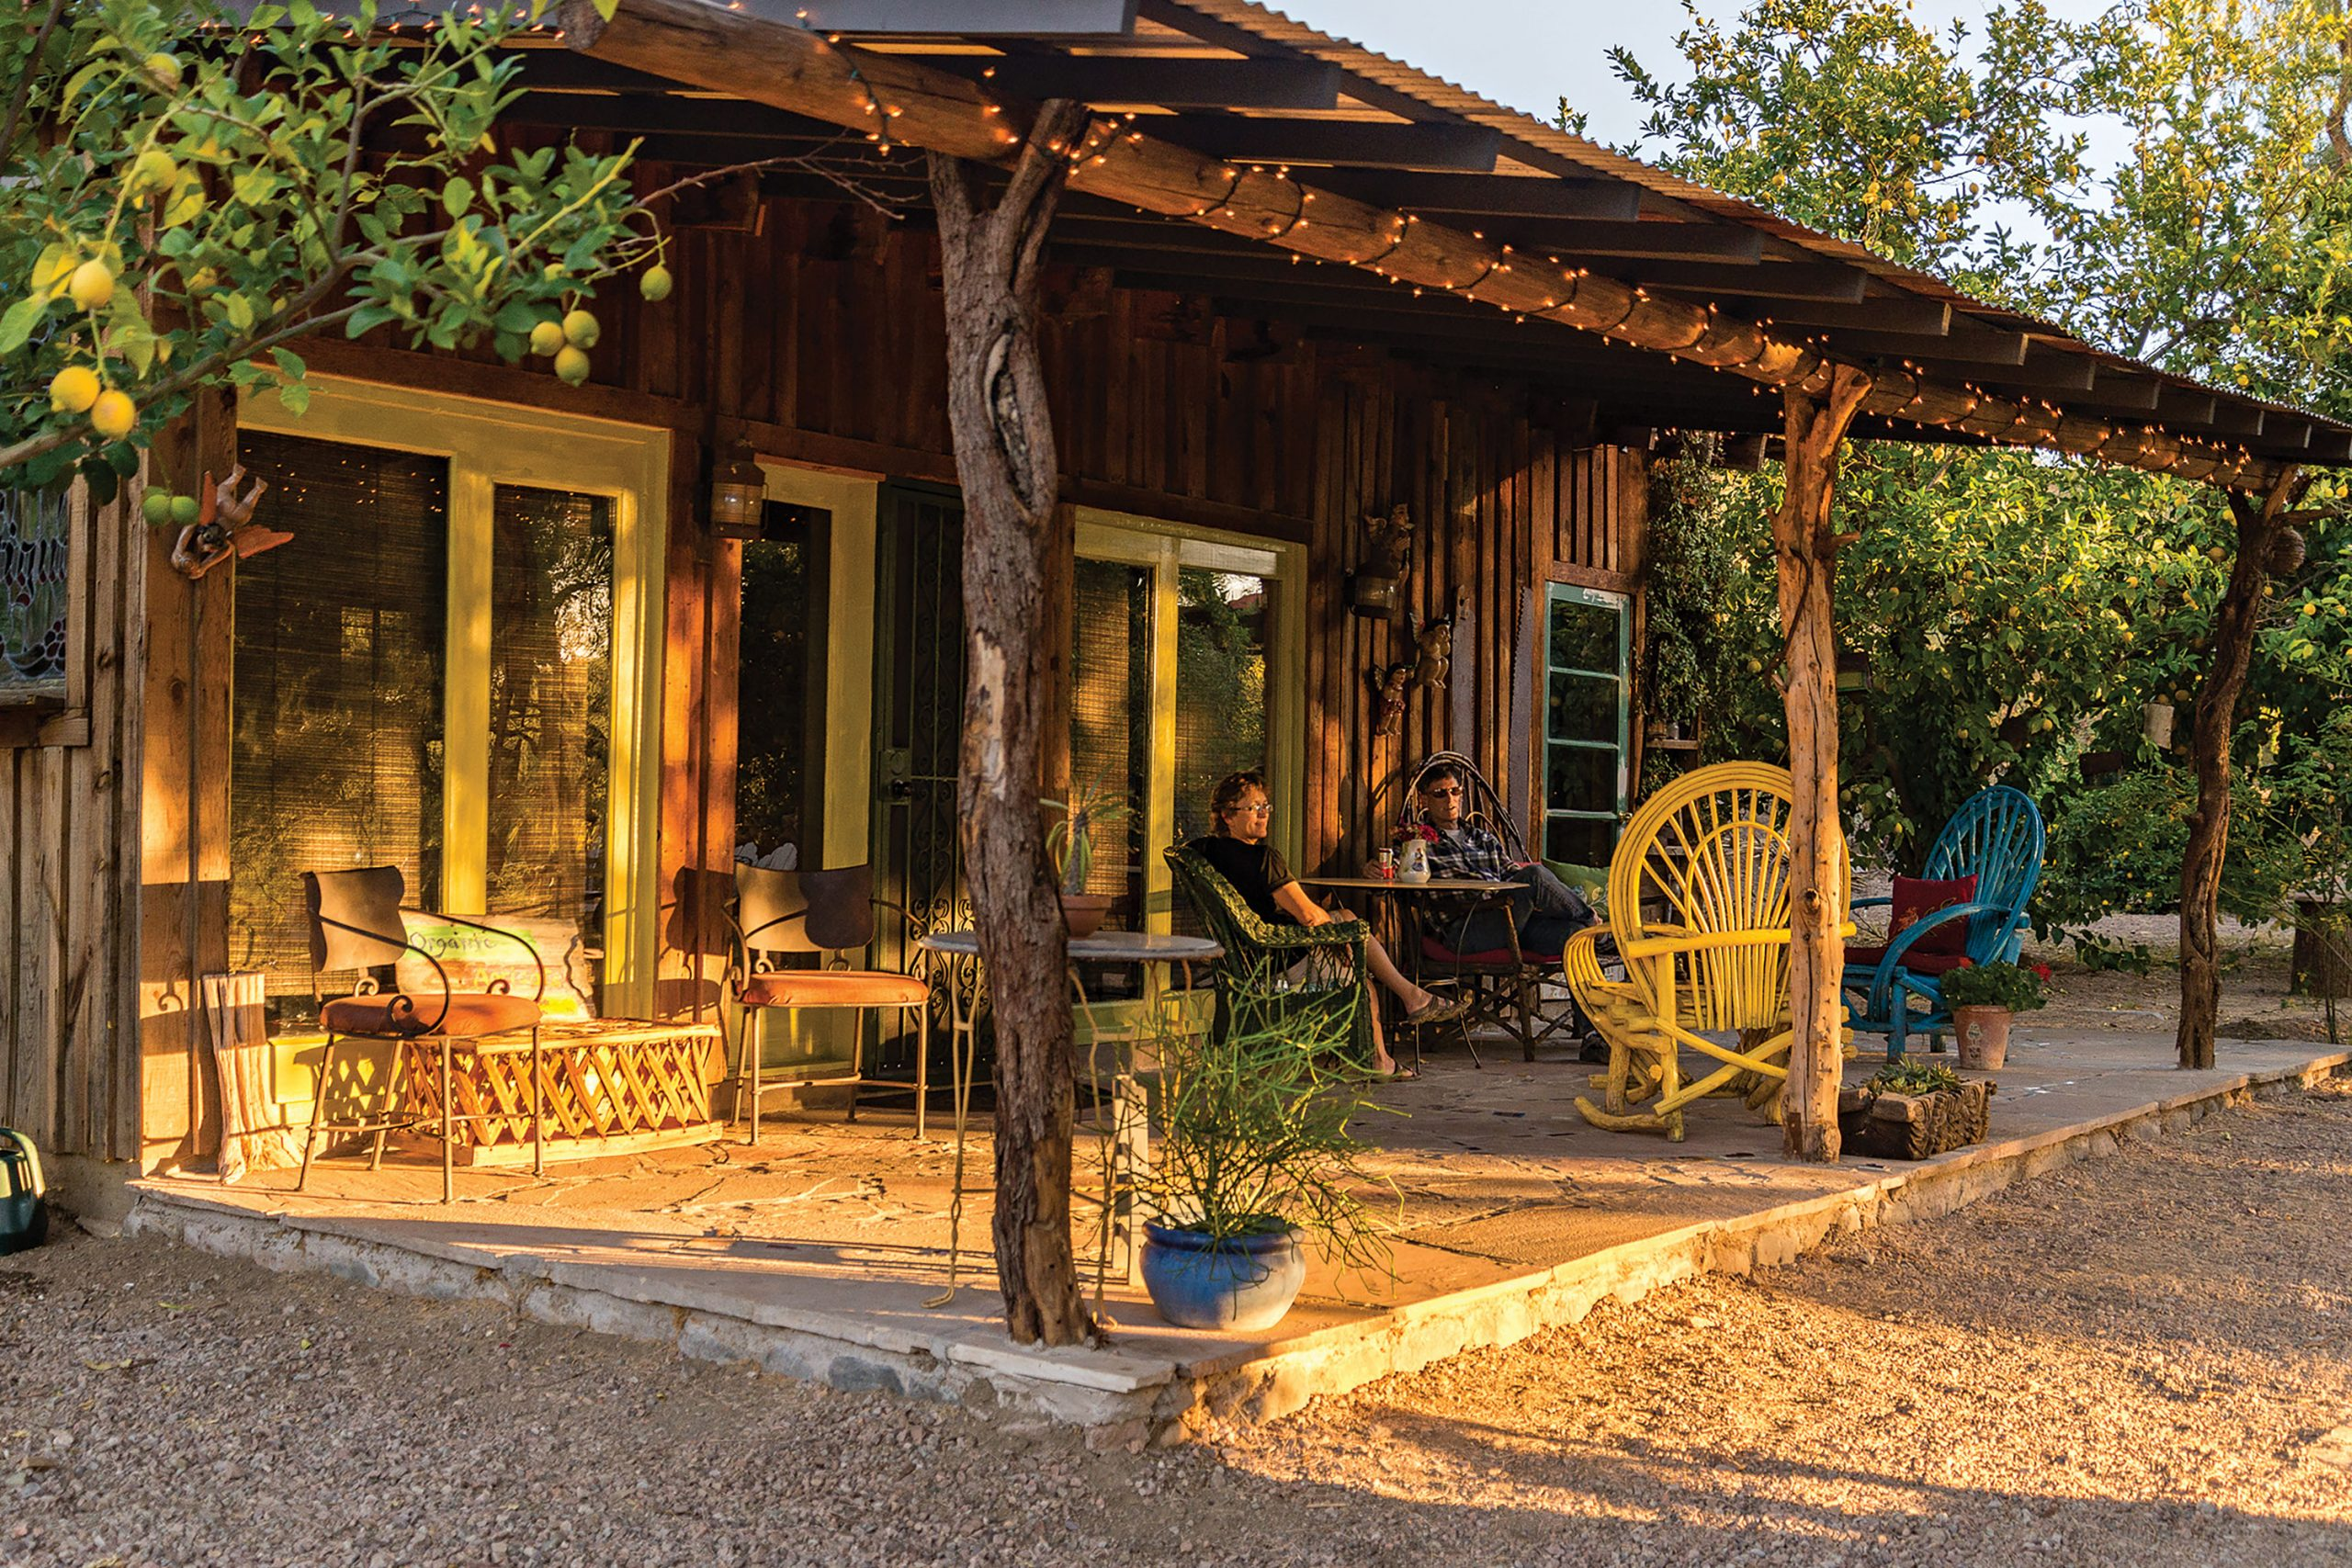 The Tree House casita at Aravaipa Farms Orchard and Inn; Photo by Jack H. Taylor